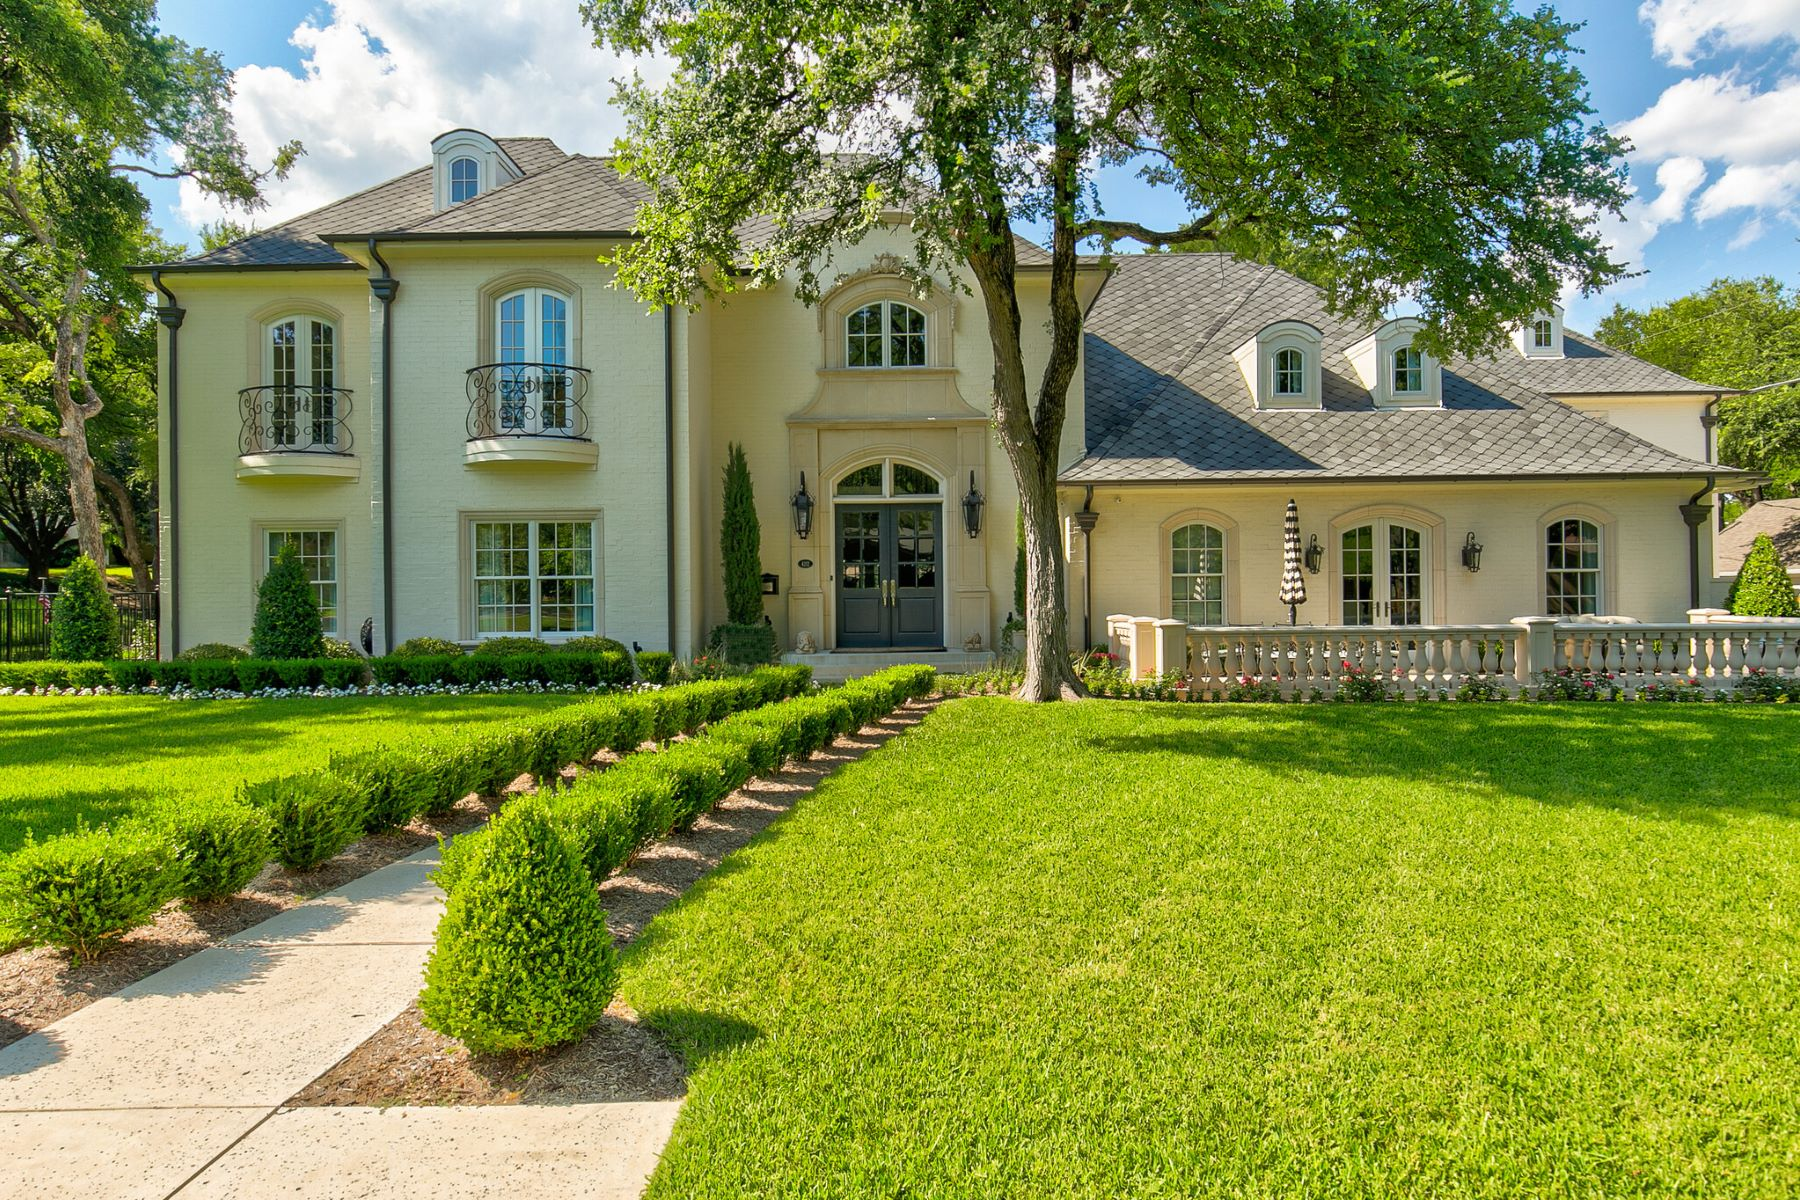 Single Family Homes for Sale at Overton Park Masterpiece 4212 Tanbark Trail Fort Worth, Texas 76109 United States